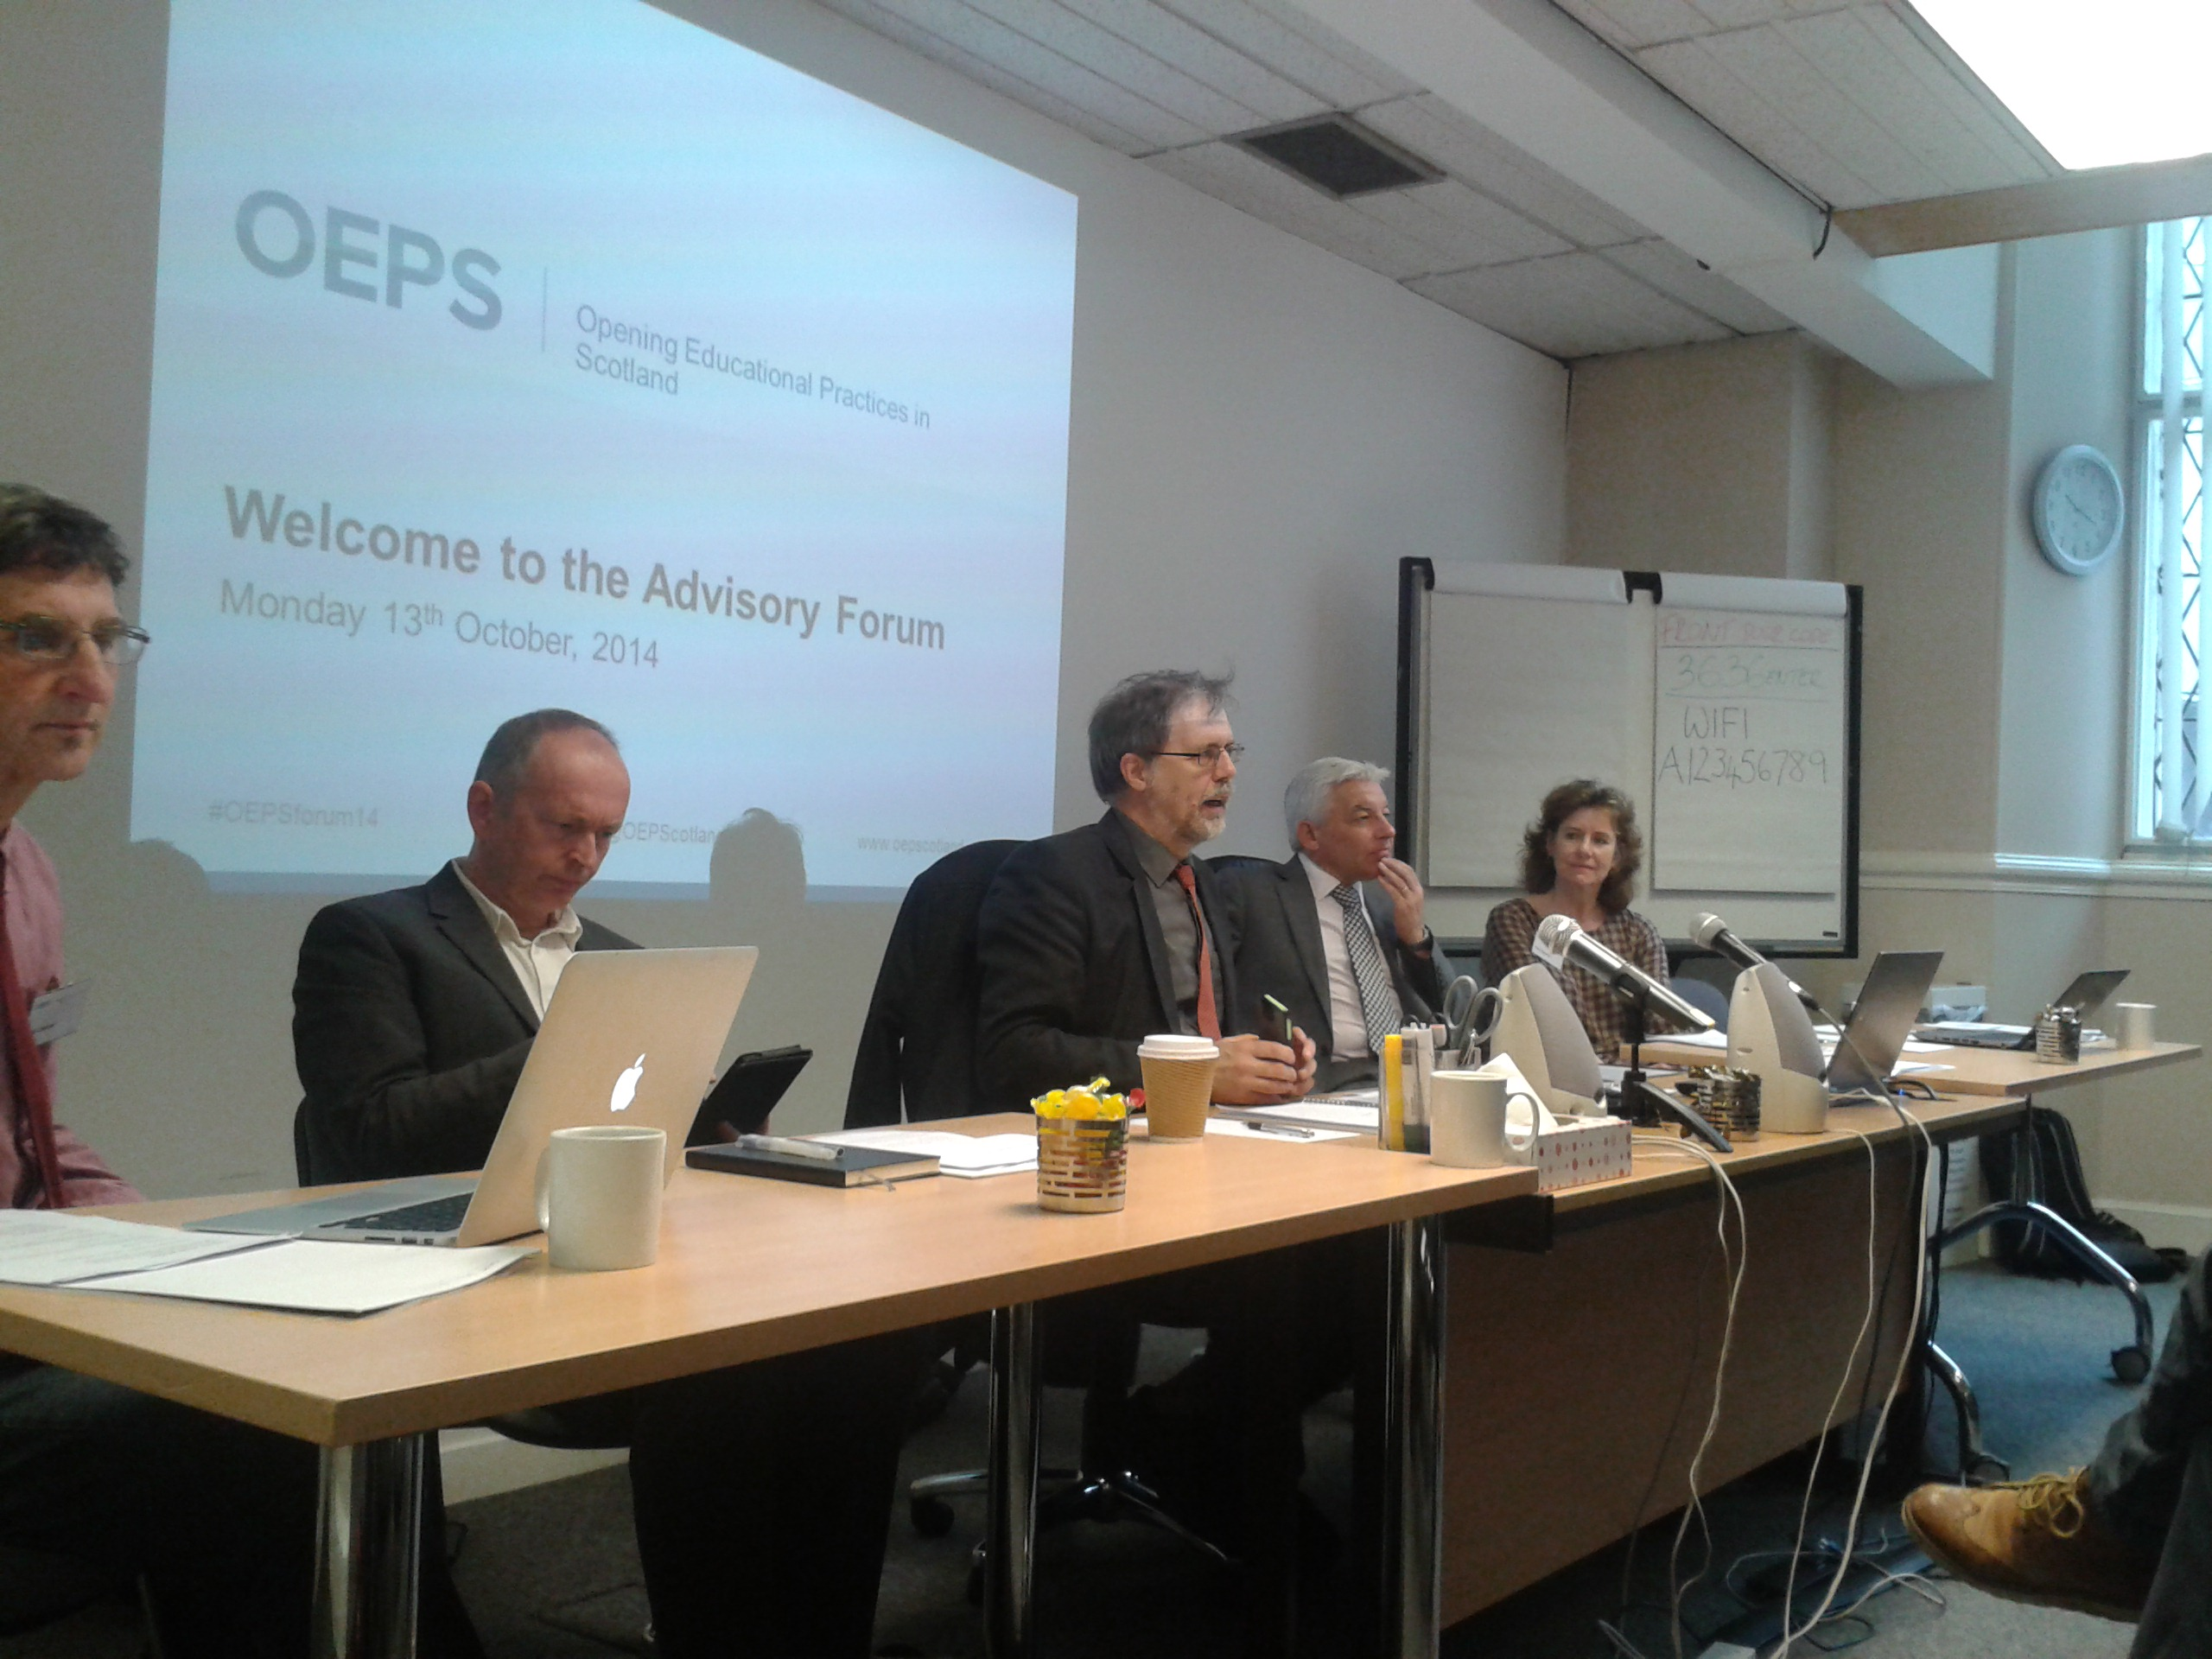 Opening Educational Practices in Scotland (OEPS) Launch